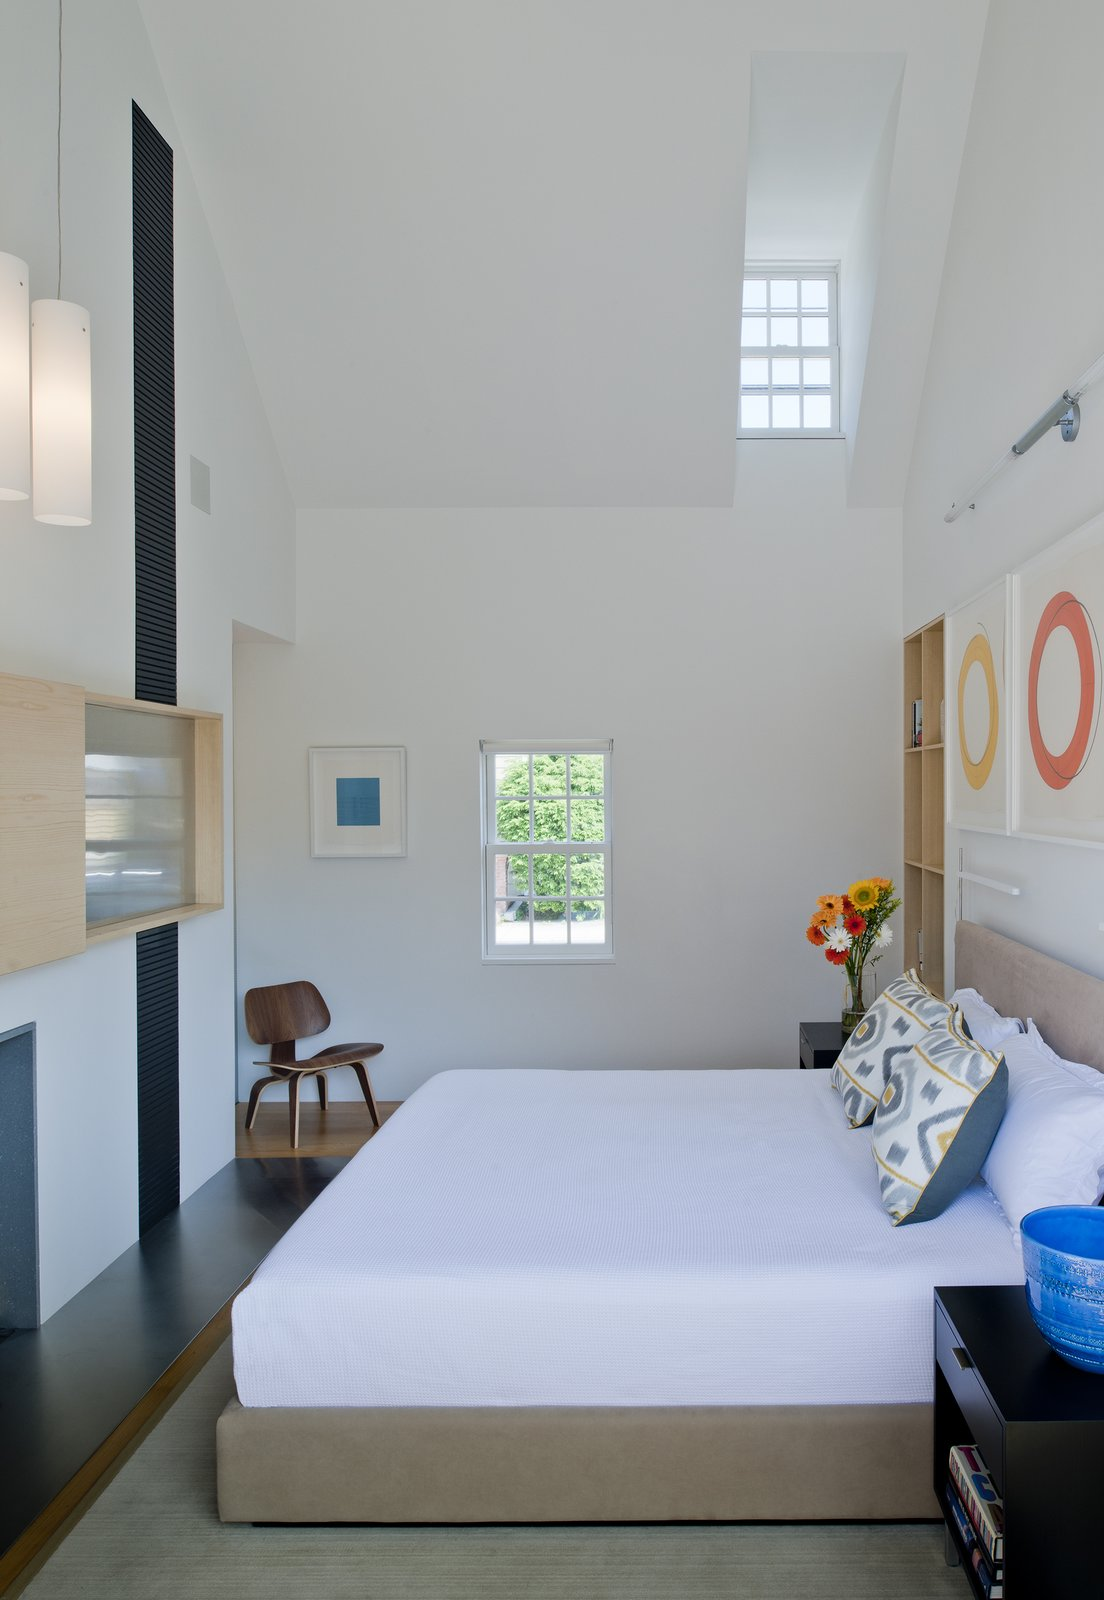 """In this project, the interior walls and ceilings in the existing historical component are white, and the walls and ceiling materials in the new pavilions are wood,"" Gurney said. In the master bedroom, a custom bed and nightstands by Baron Gurney Interiors sit across from an Eames molded plywood lounge chair.  Bedrooms by Dwell from A Traditional Facade Hides A Light-Filled Modern Delaware Renovation"